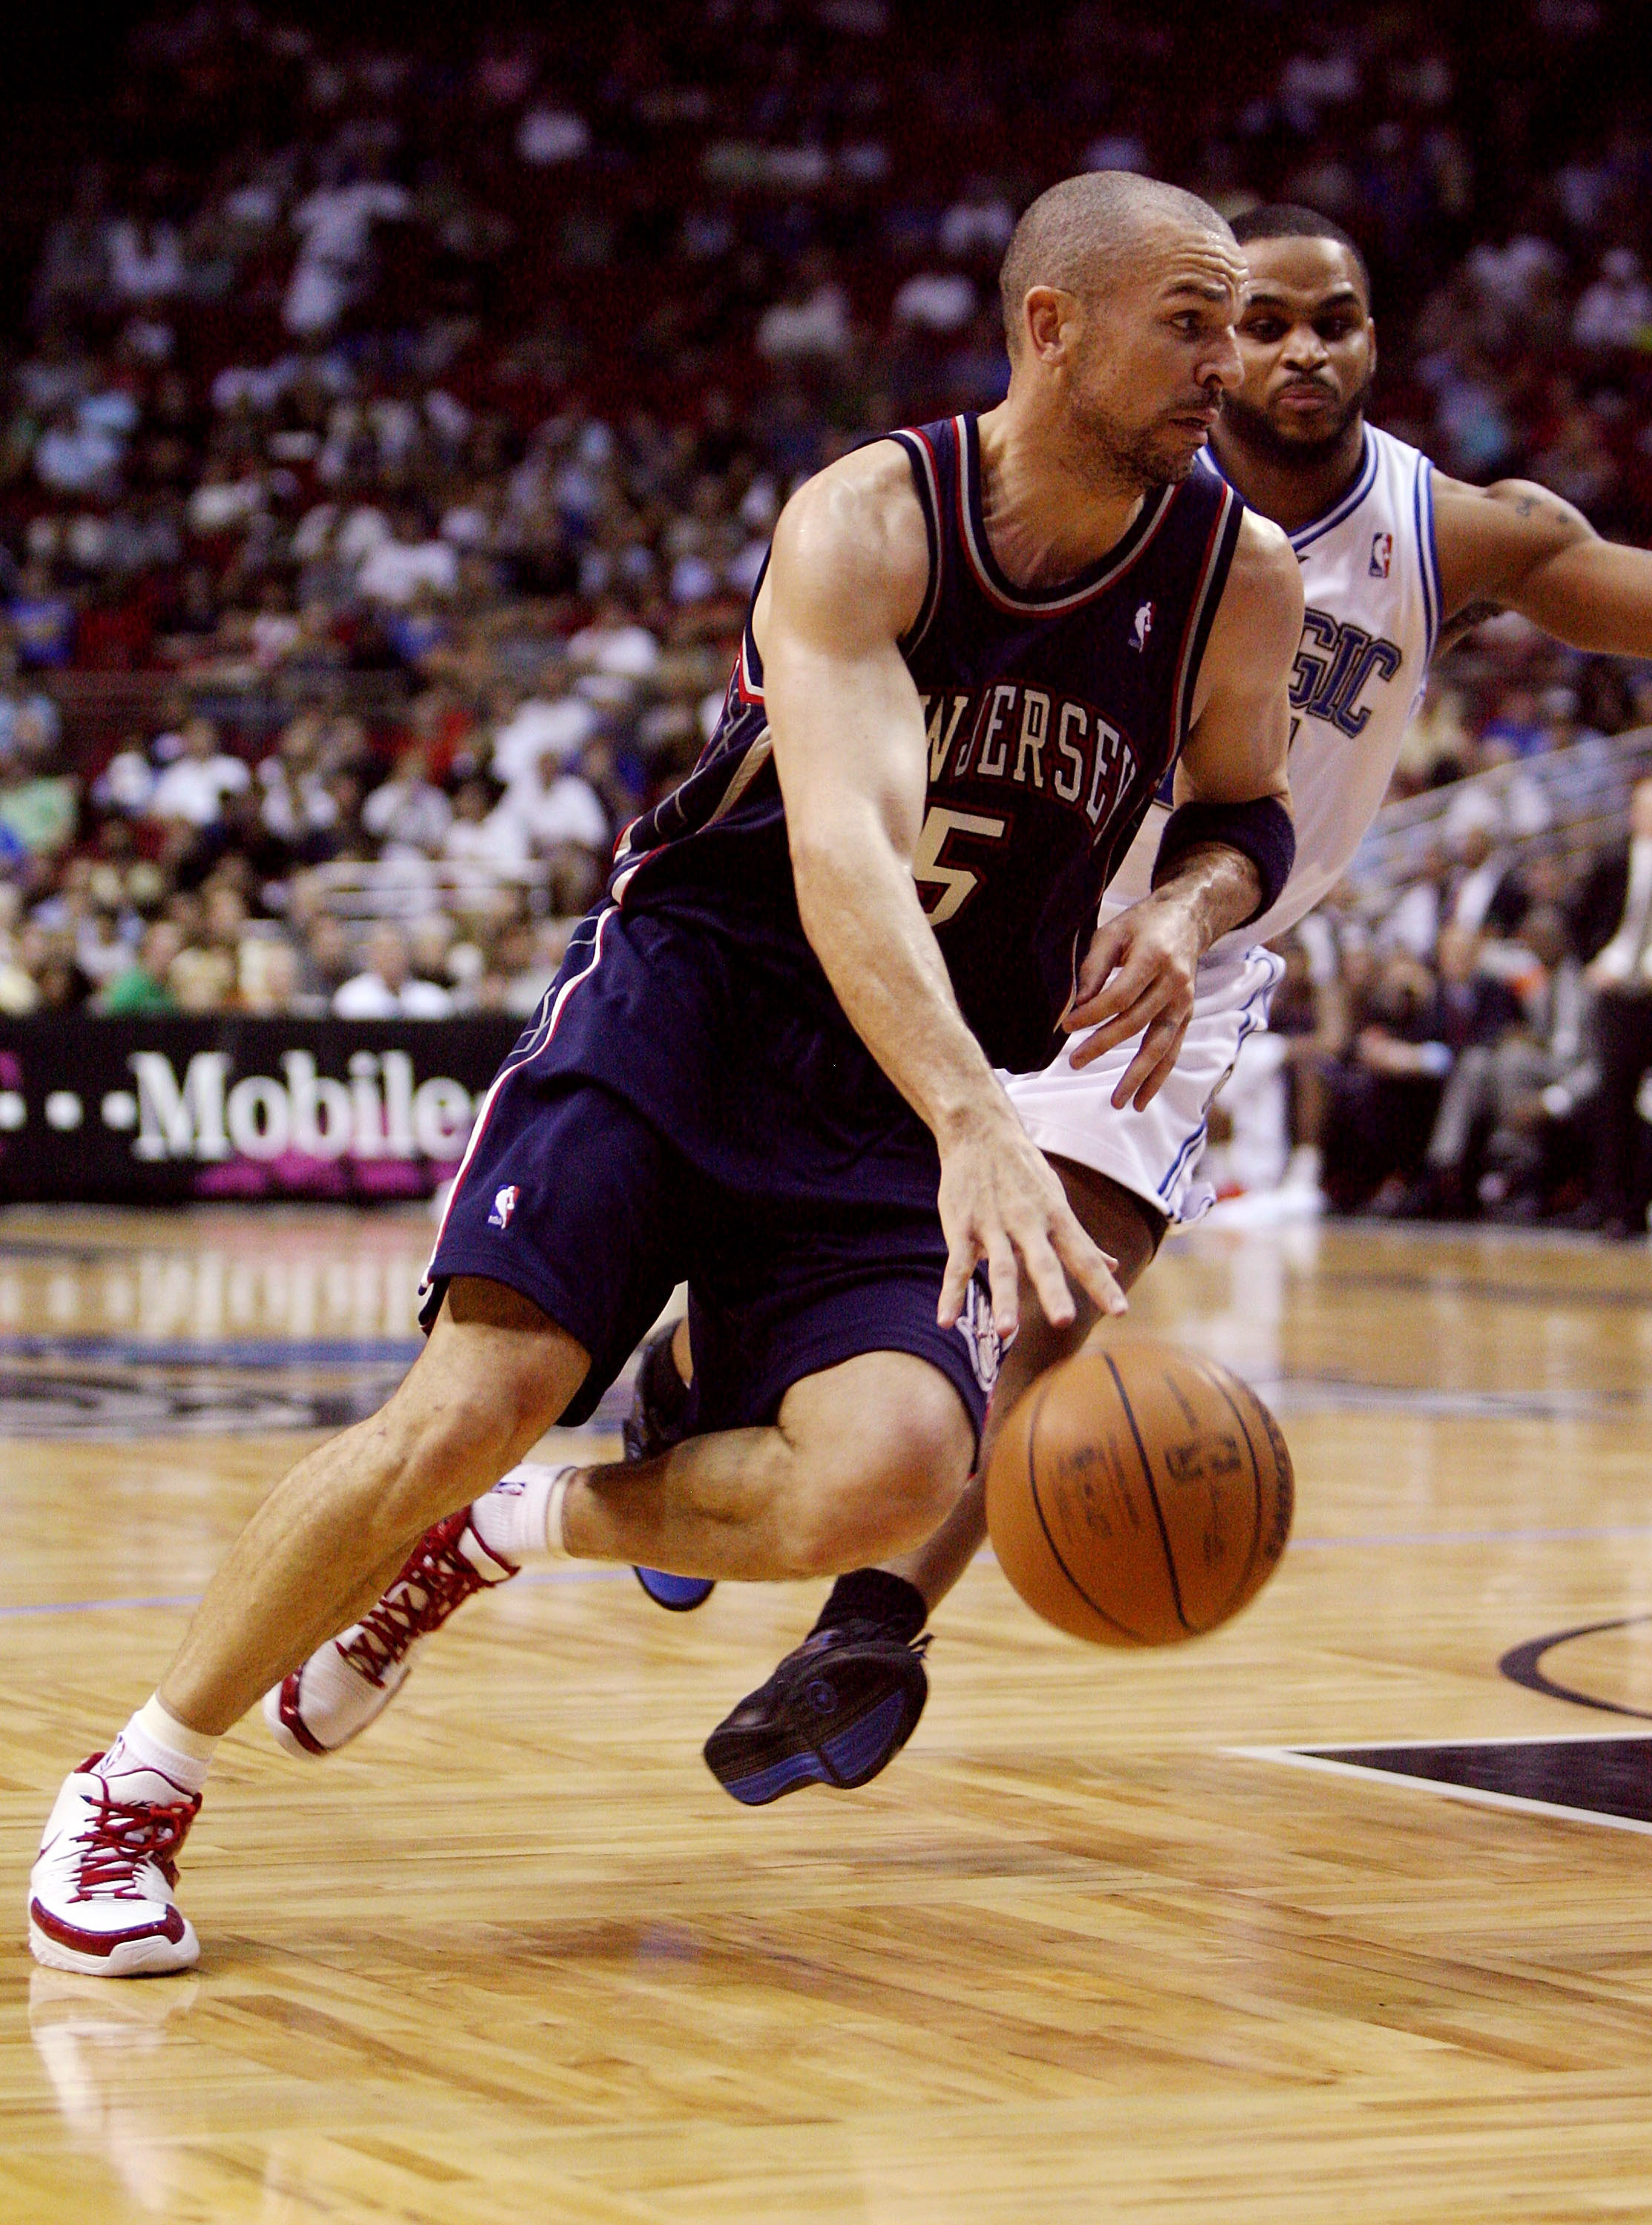 ORLANDO, FL - FEBRUARY 06:  Jason Kidd #5 of the New Jersey Nets drives past Jameer Nelson #14 of the Orlando Magic at Amway Arena on February 6, 2008 in Orlando, Florida. NOTE TO USER: User expressly acknowledges and agrees that, by downloading and or us